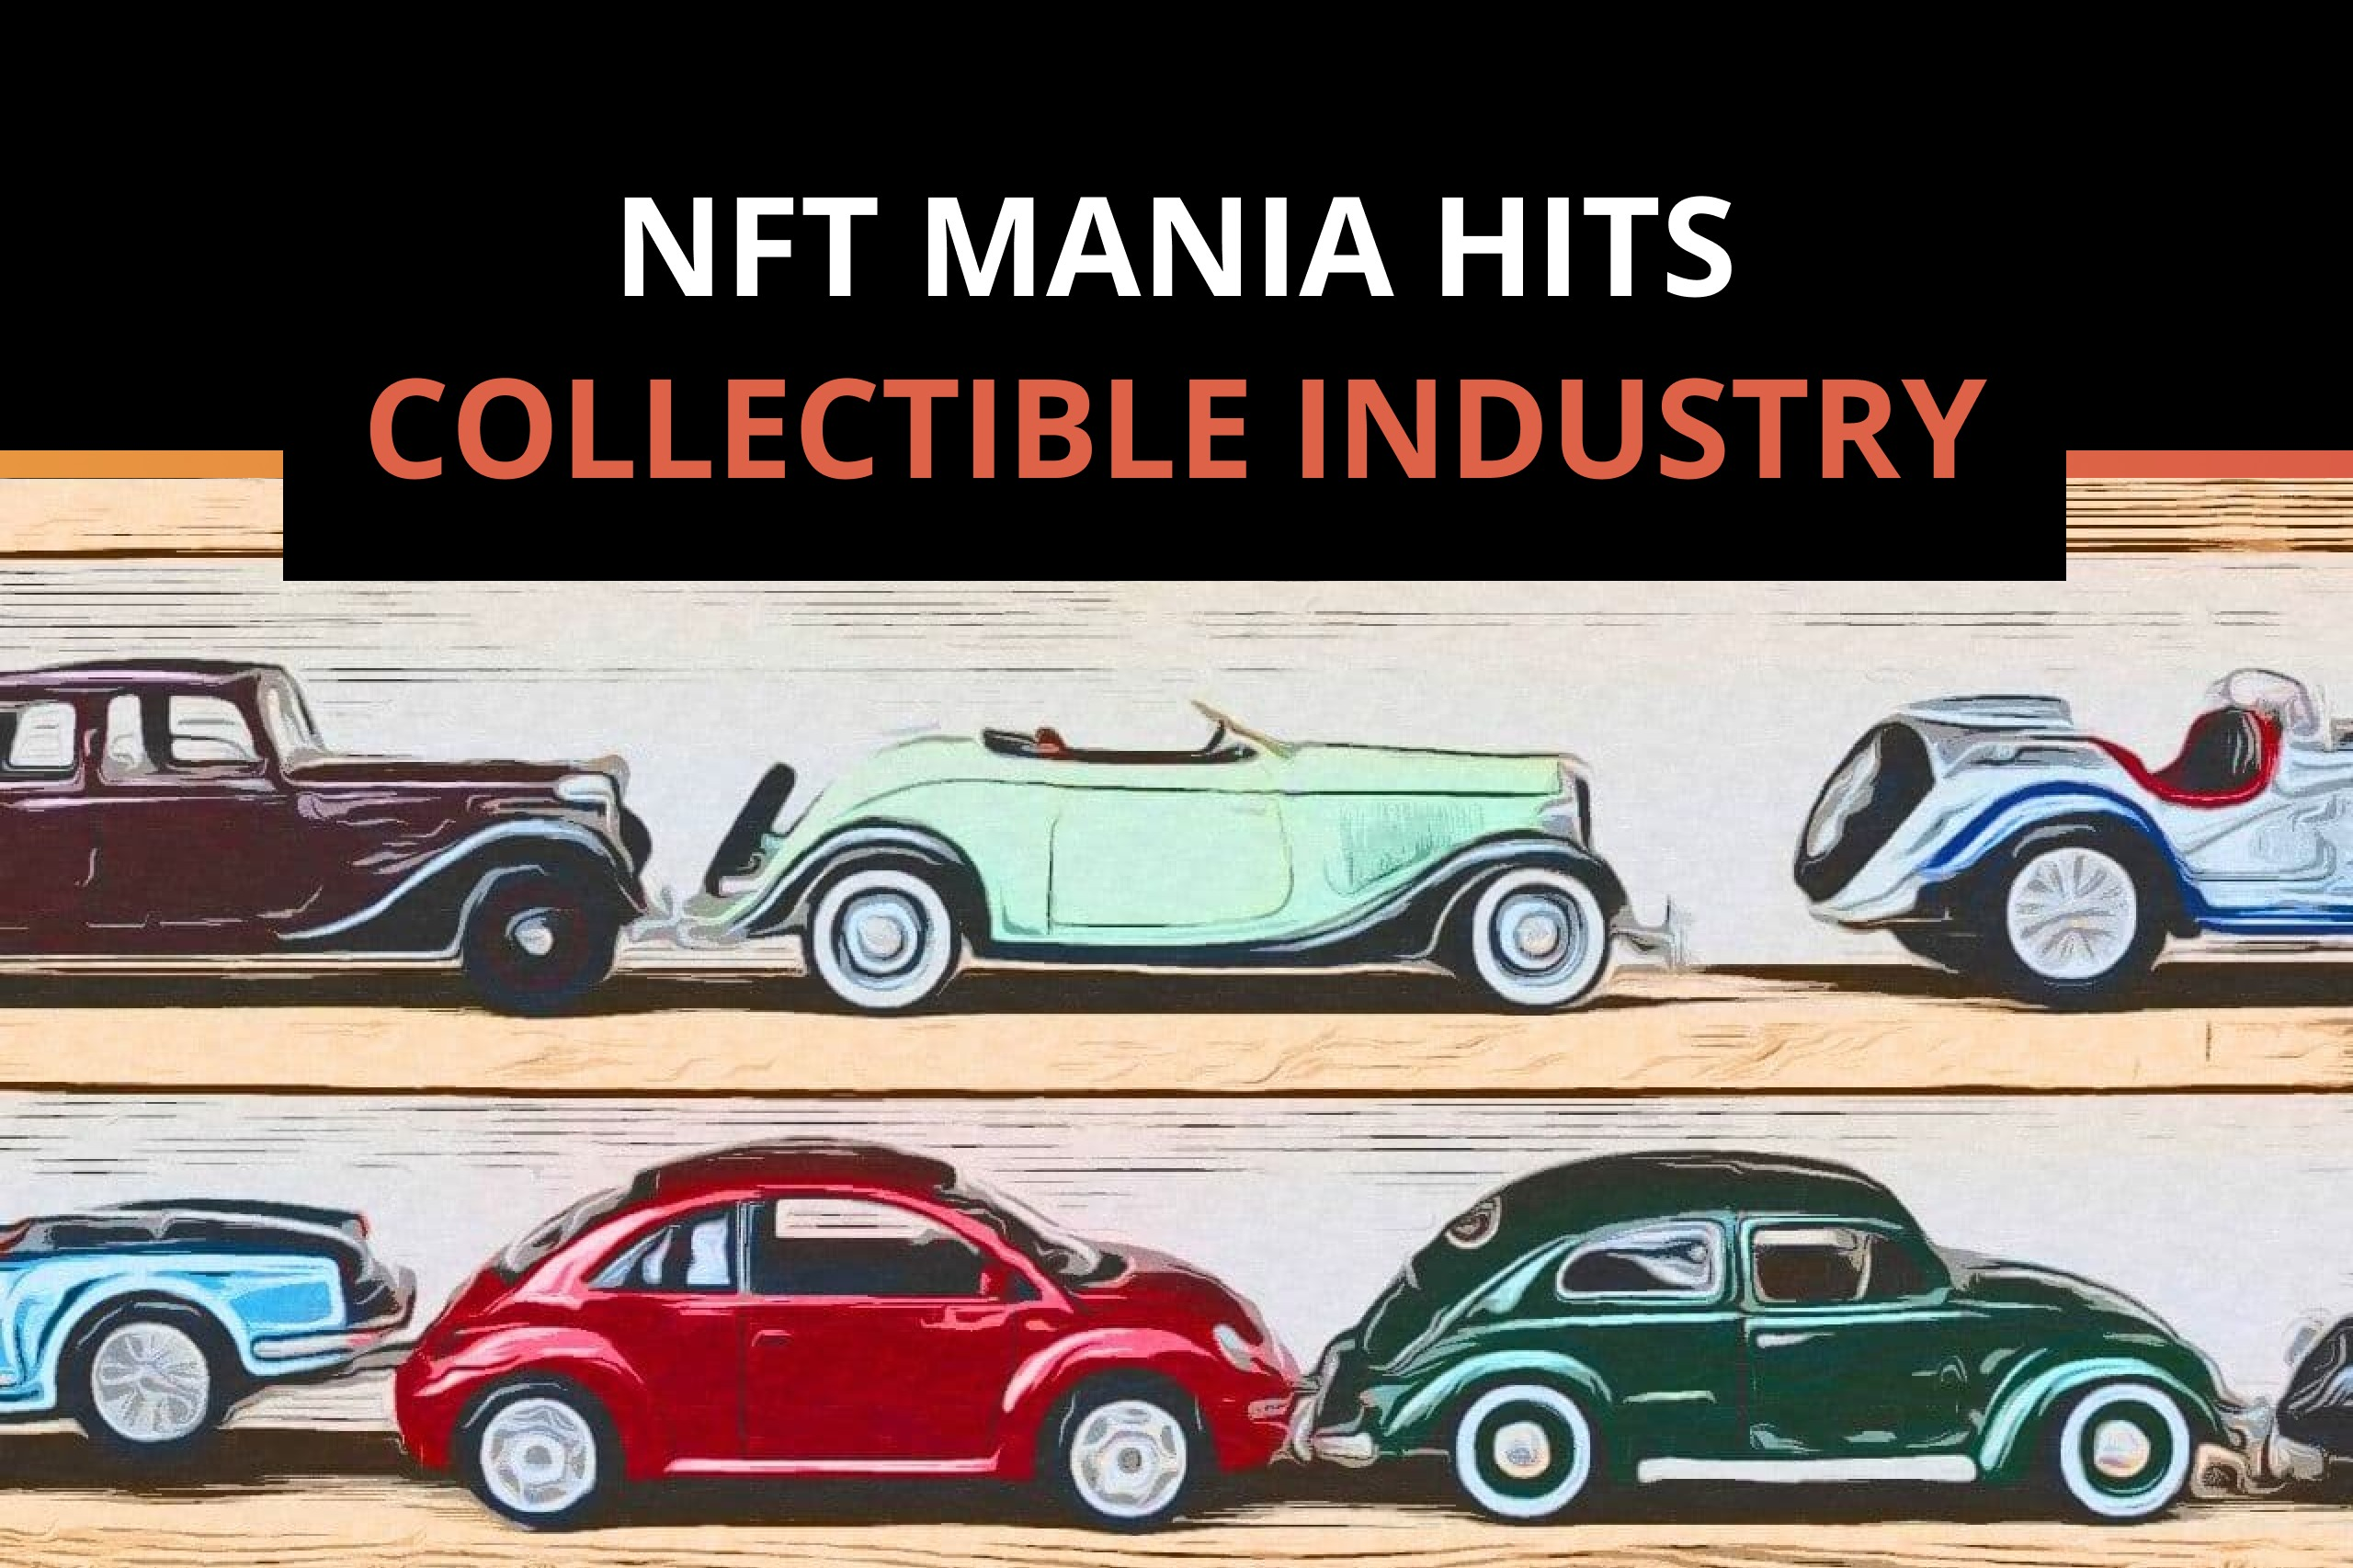 NFT mania hits the collectible industry